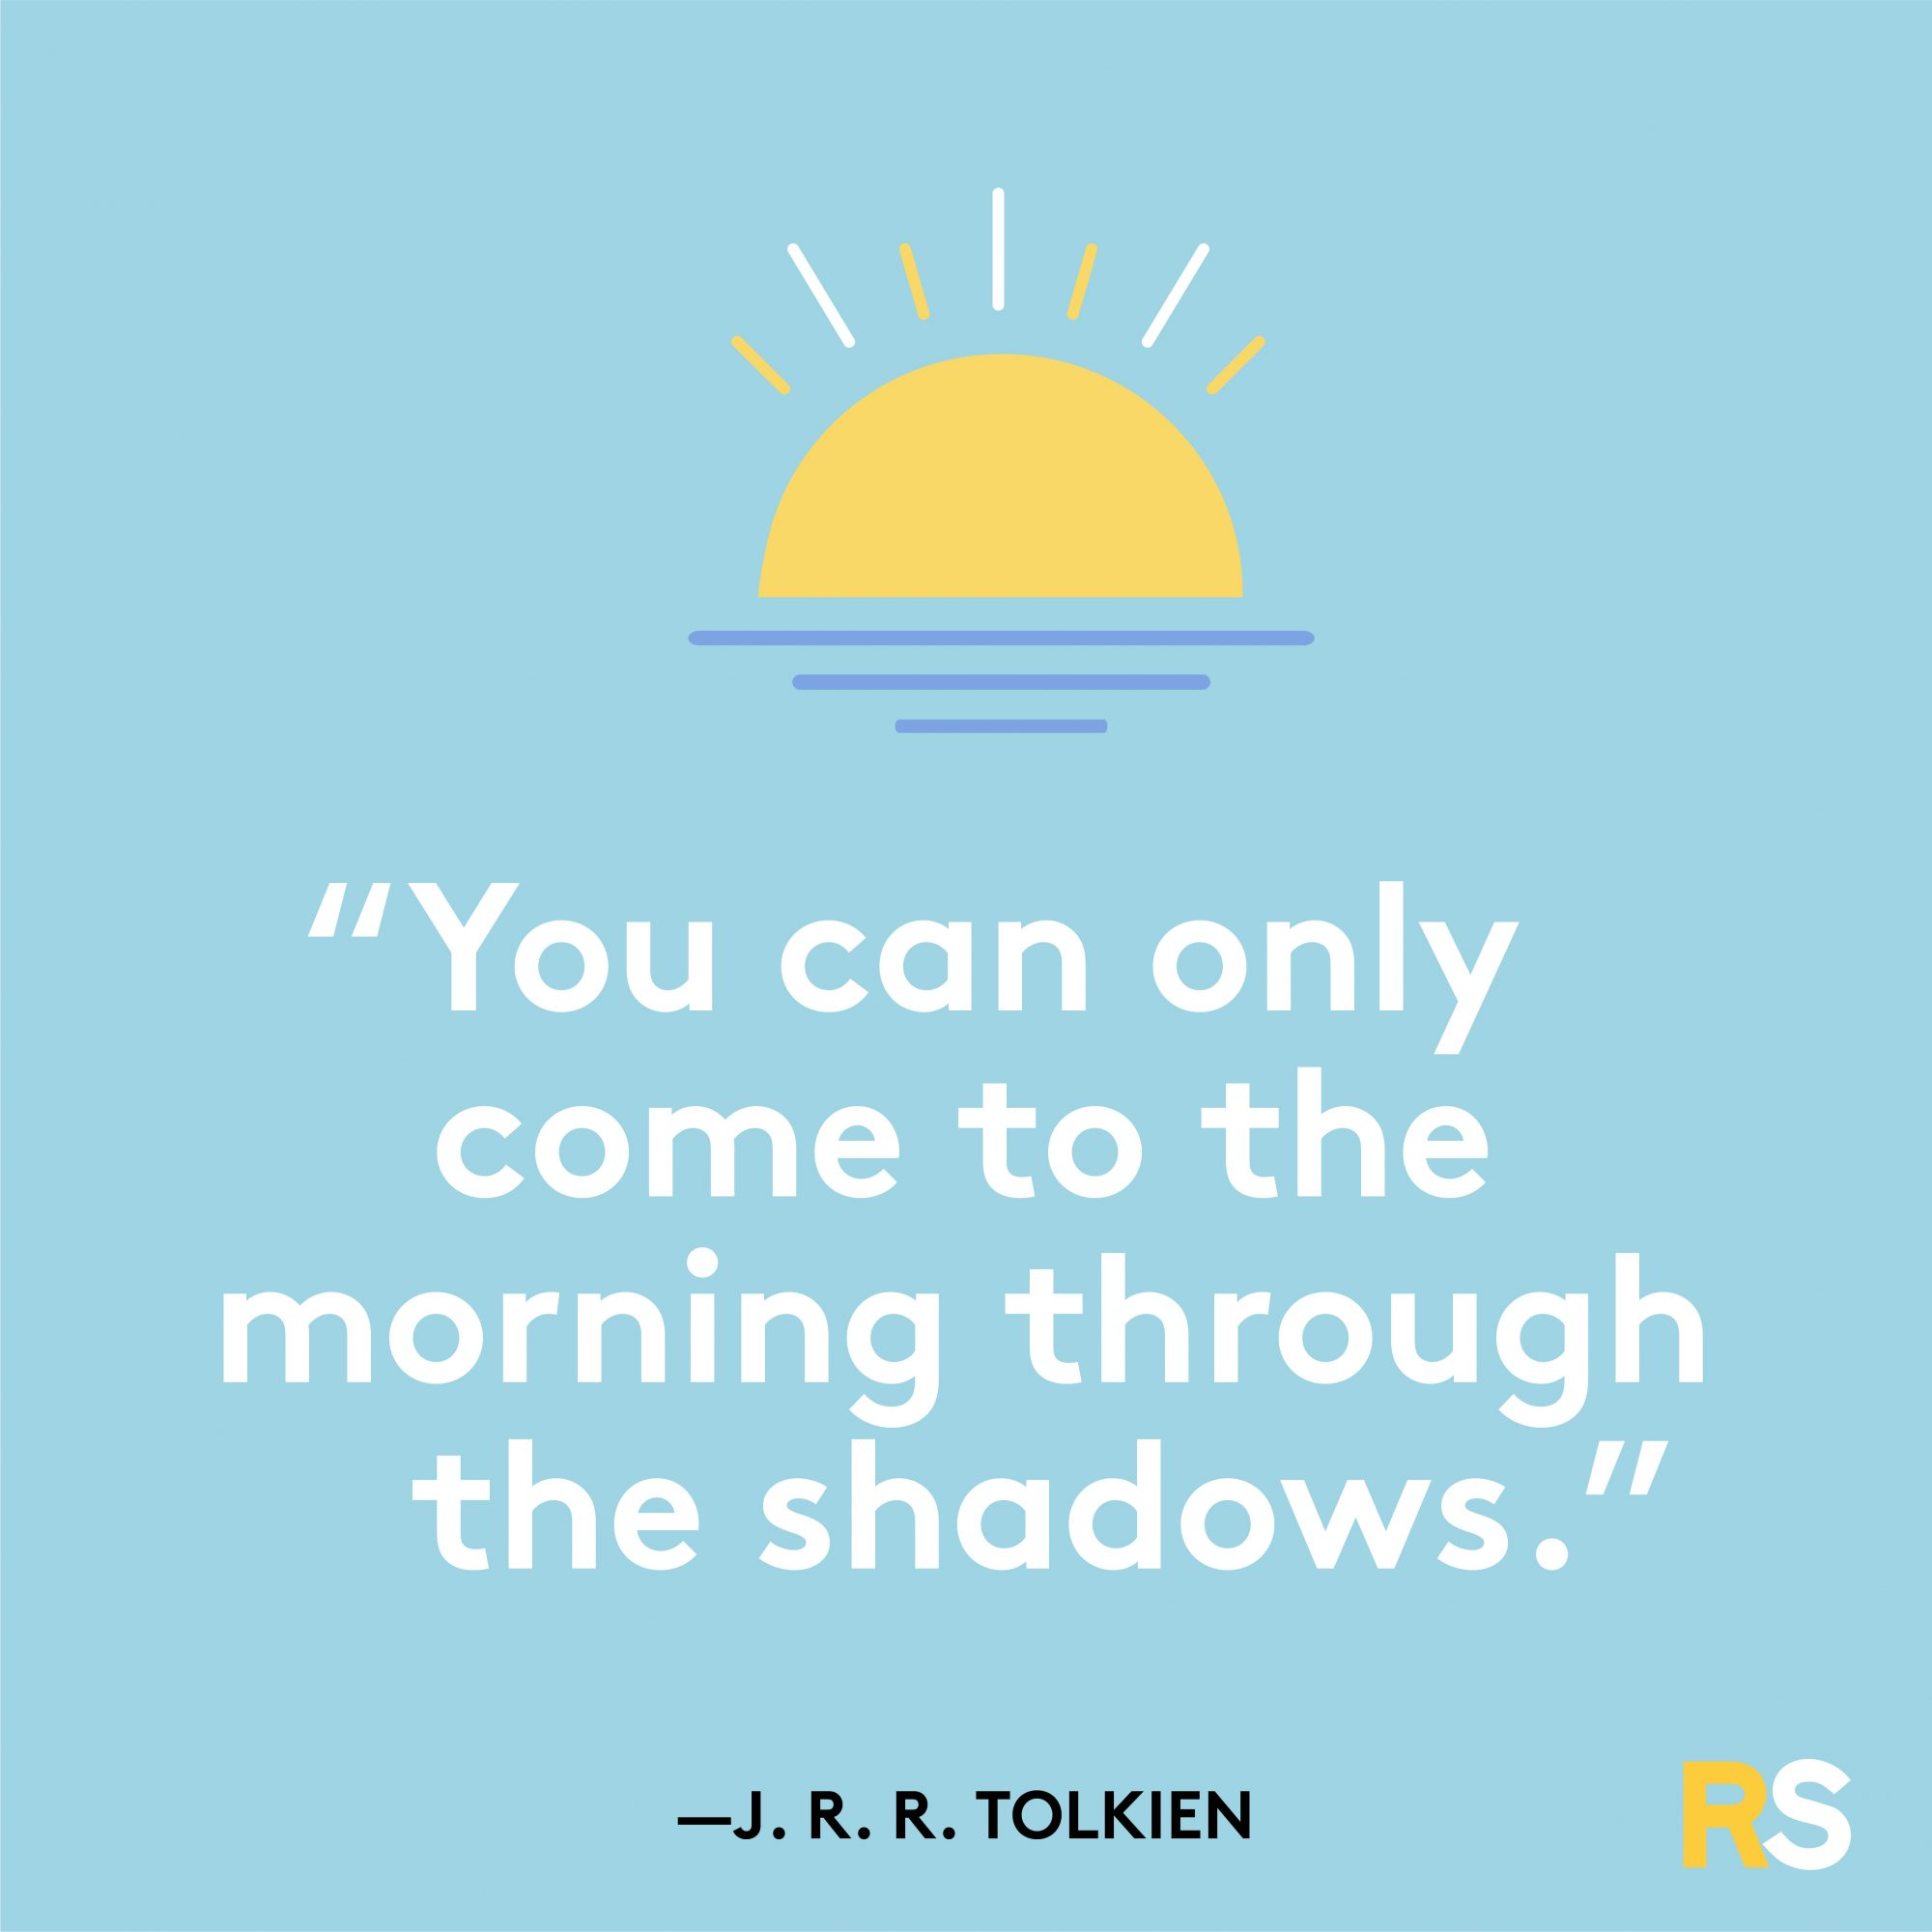 Morning Through the Shadows Quote by J.R.R. Tolkien